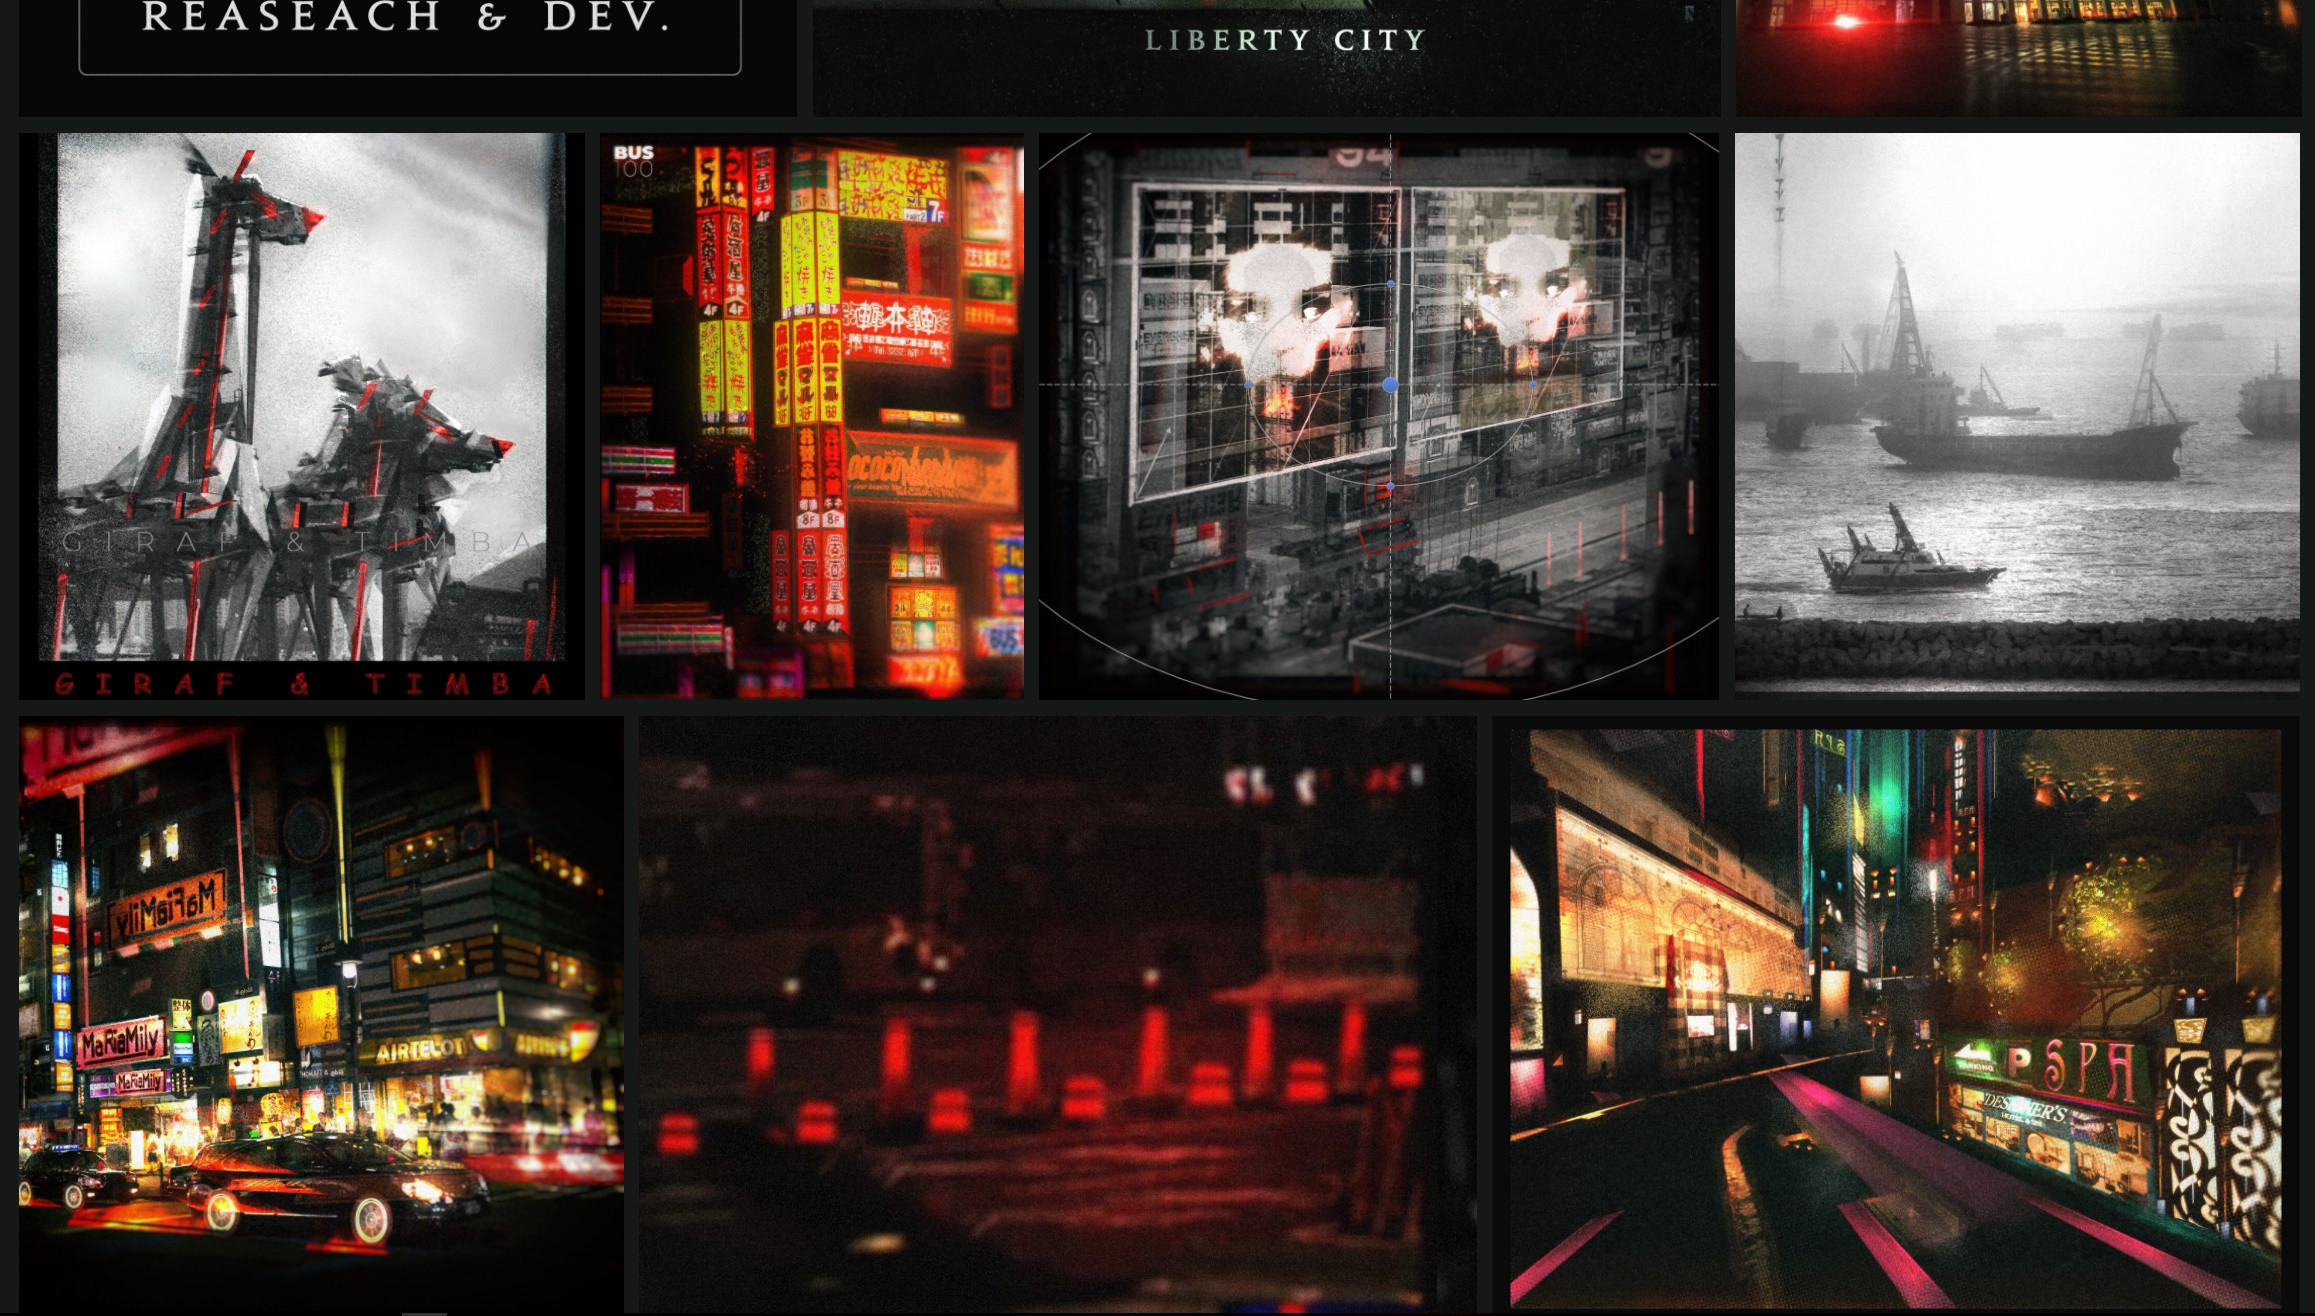 Snapshots in Liberty City.